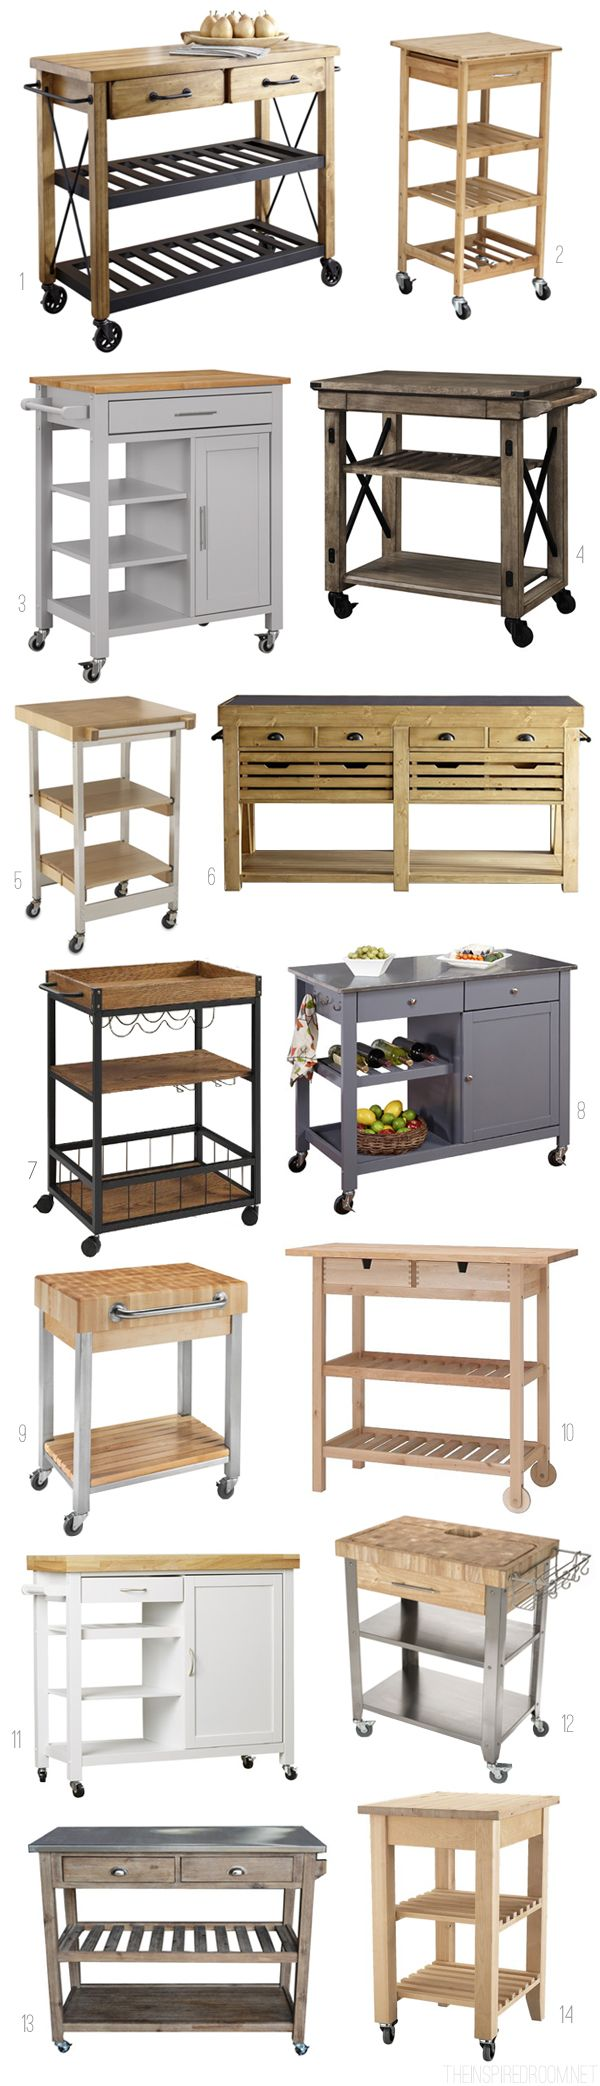 Kitchen Islands And Carts Furniture 17 Best Ideas About Kitchen Carts On Pinterest Small Kitchen